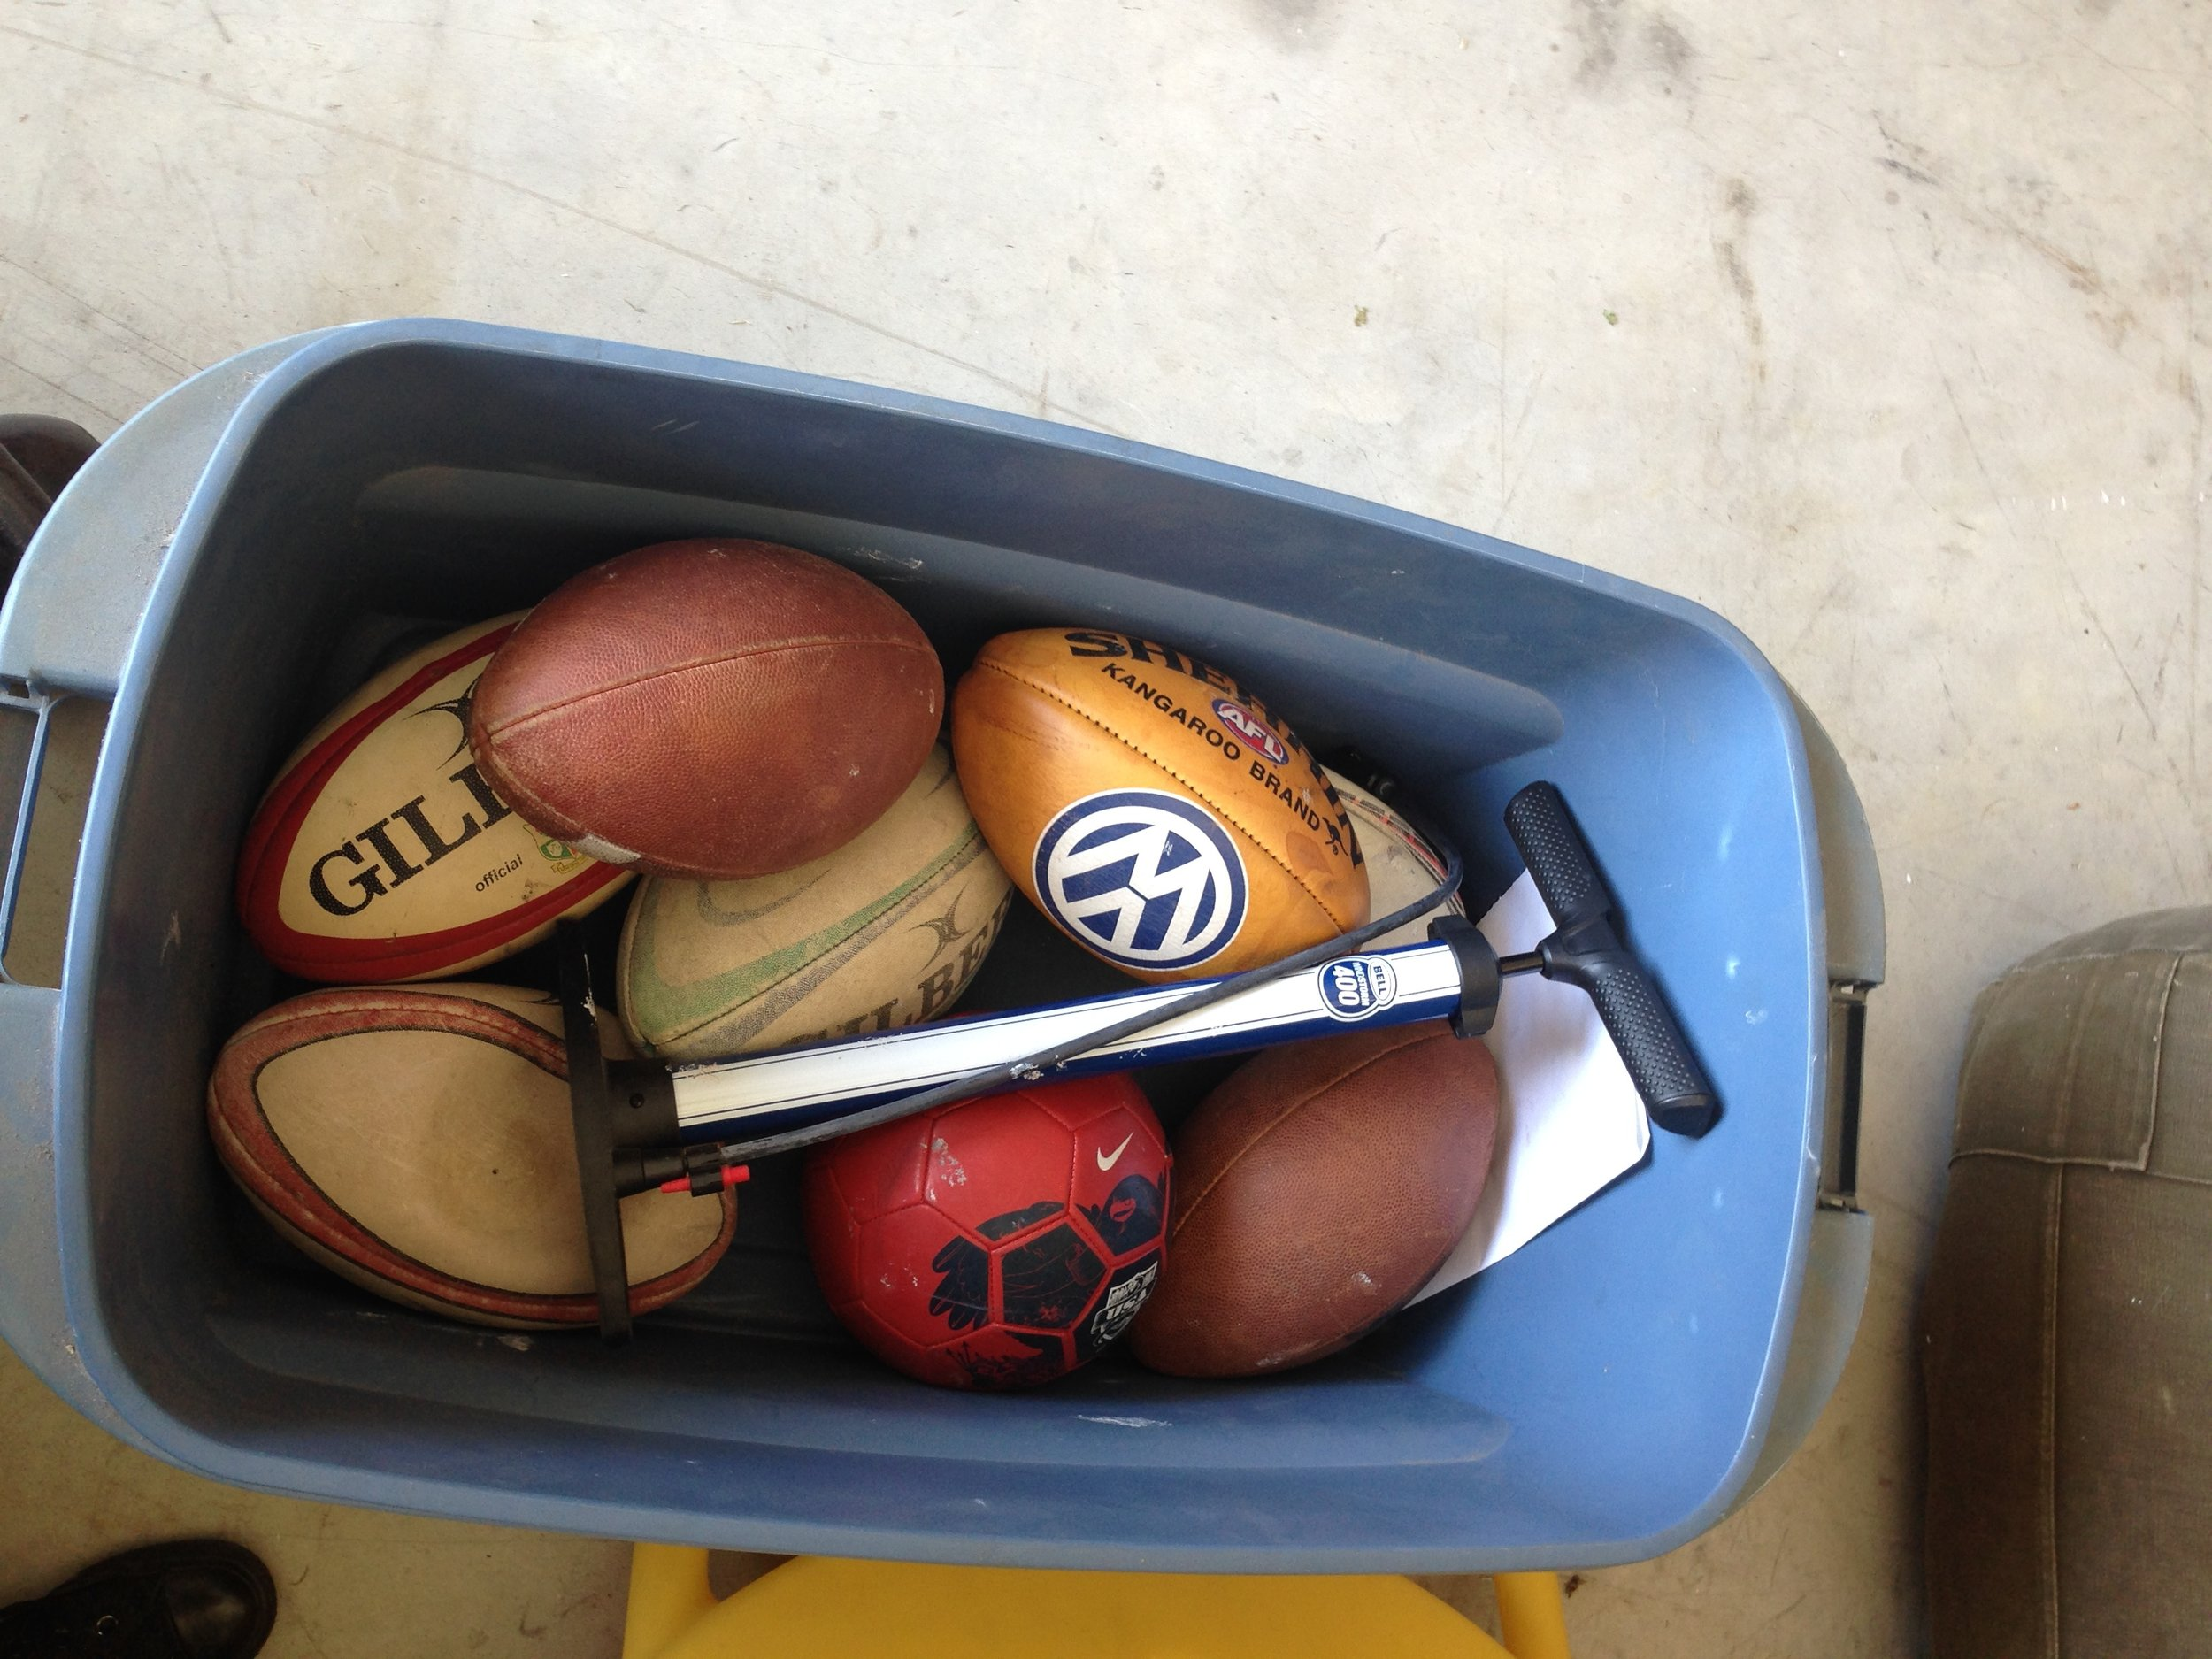 And a bucket of rugby balls.